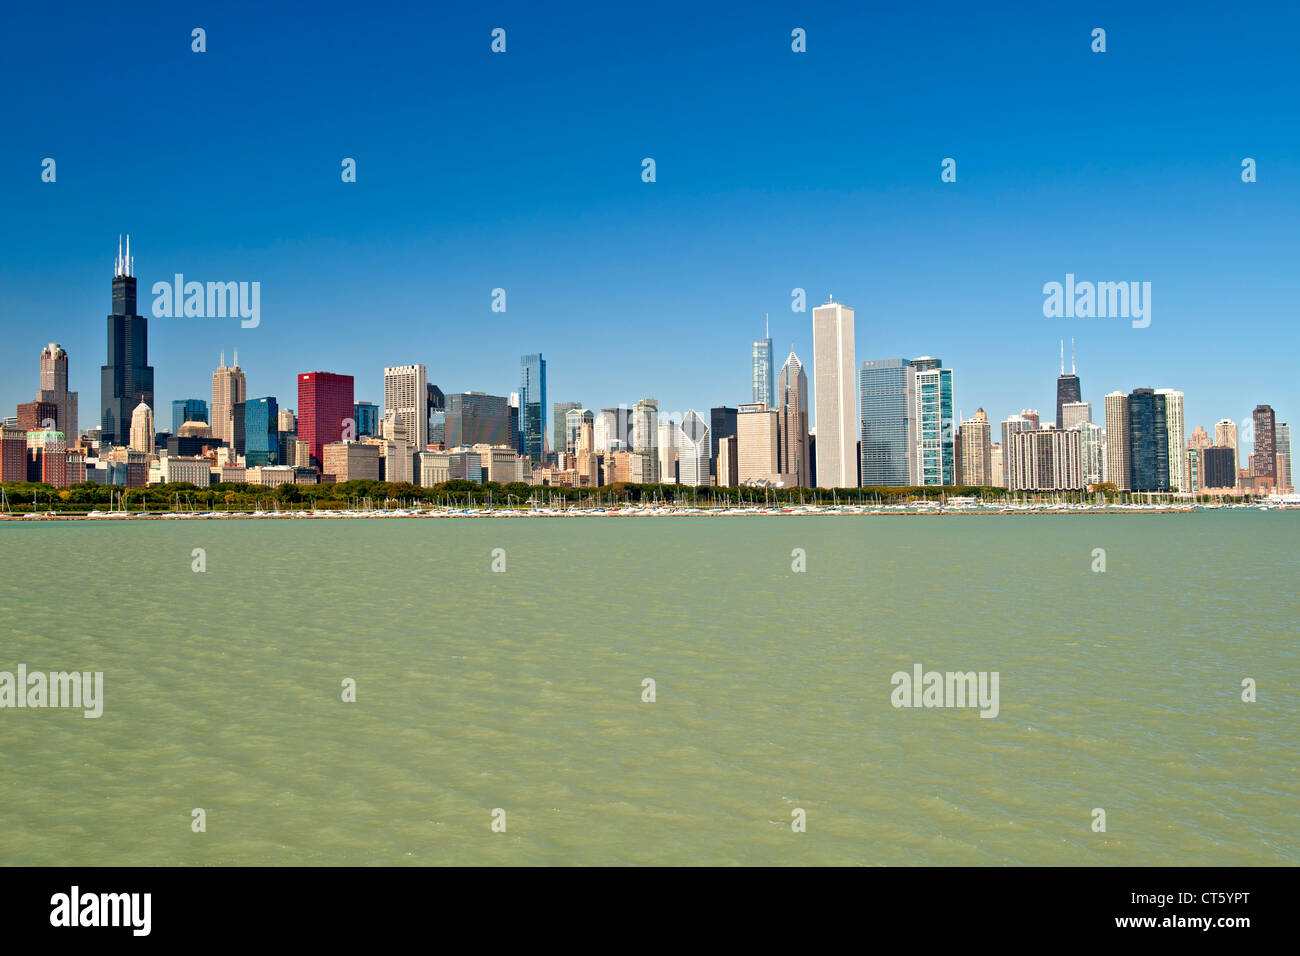 The Chicago skyline with the Chicago harbour and Lake Michigan in the foreground. - Stock Image